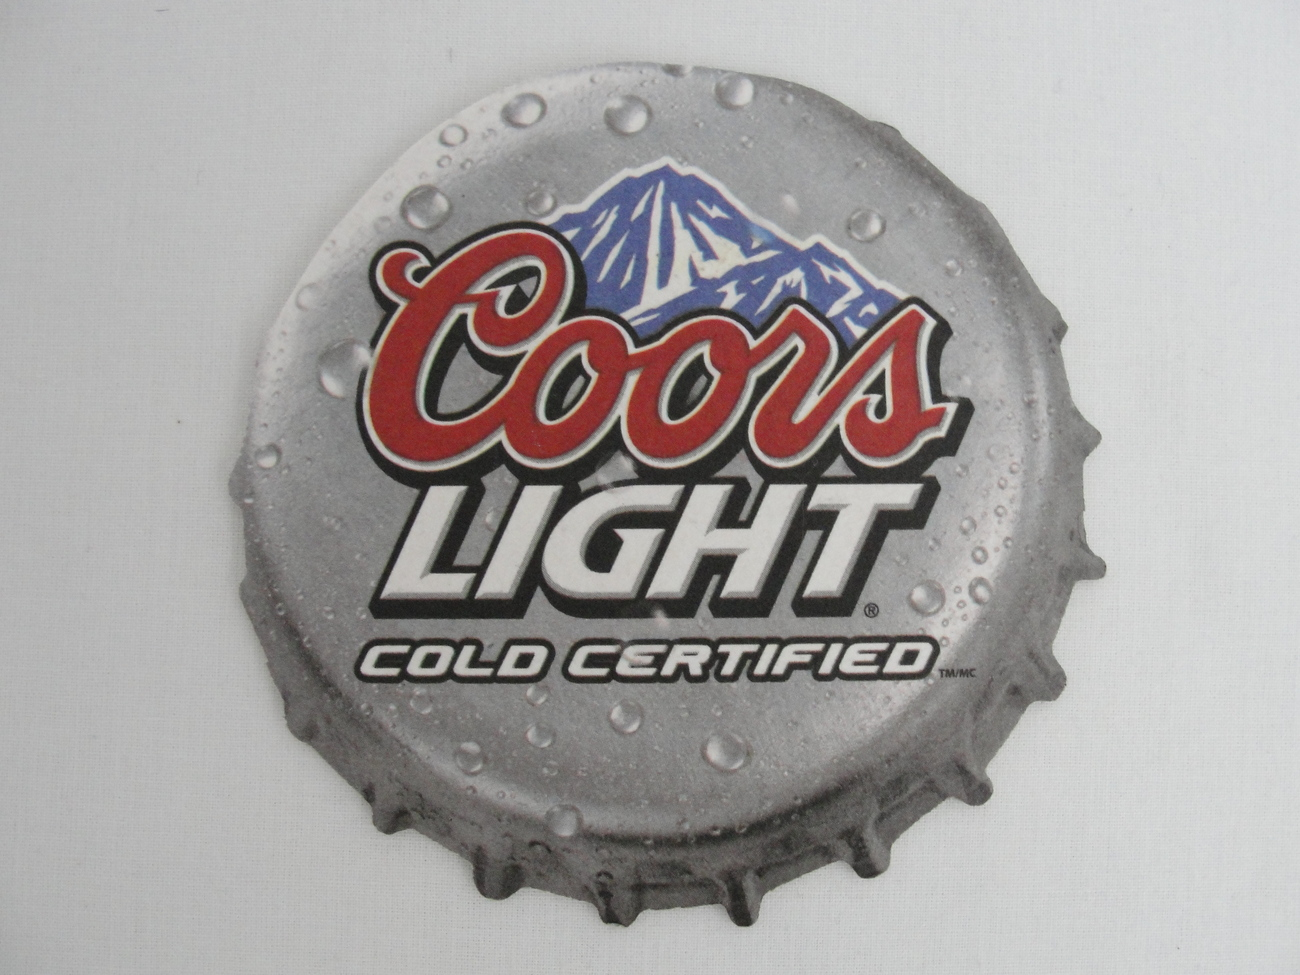 Coaster Coors Light Cold Certified Beer One and similar items